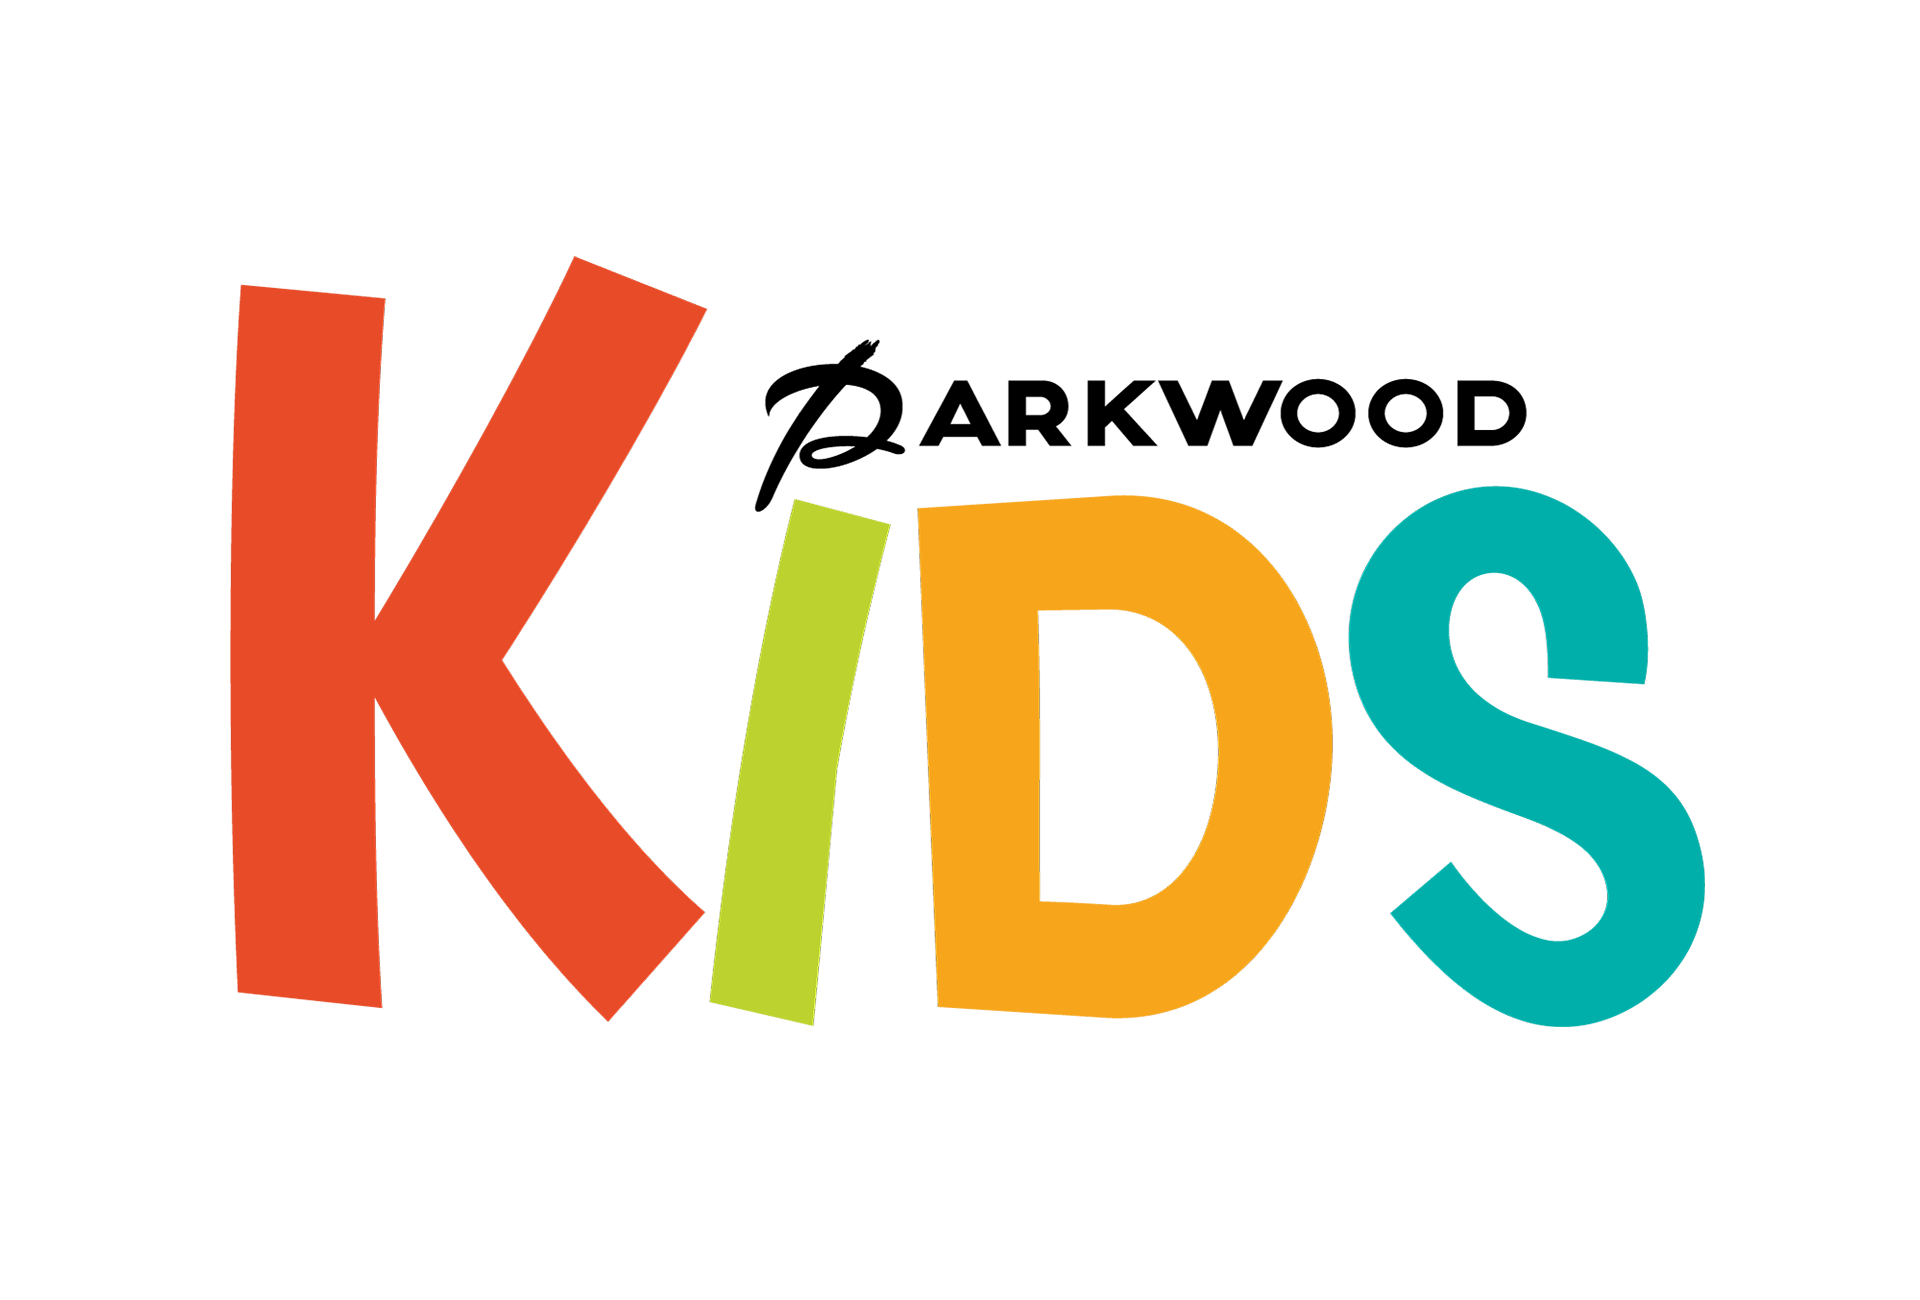 Kids - We have an amazing kids program from birth to grade 8 that operates during the Worship Gathering. If you let one of our greeters or Info Desk team know that it's your first visit, they'll be happy to direct you to the kids check-in area outside the gymnasium. Check out our kids program guide below.